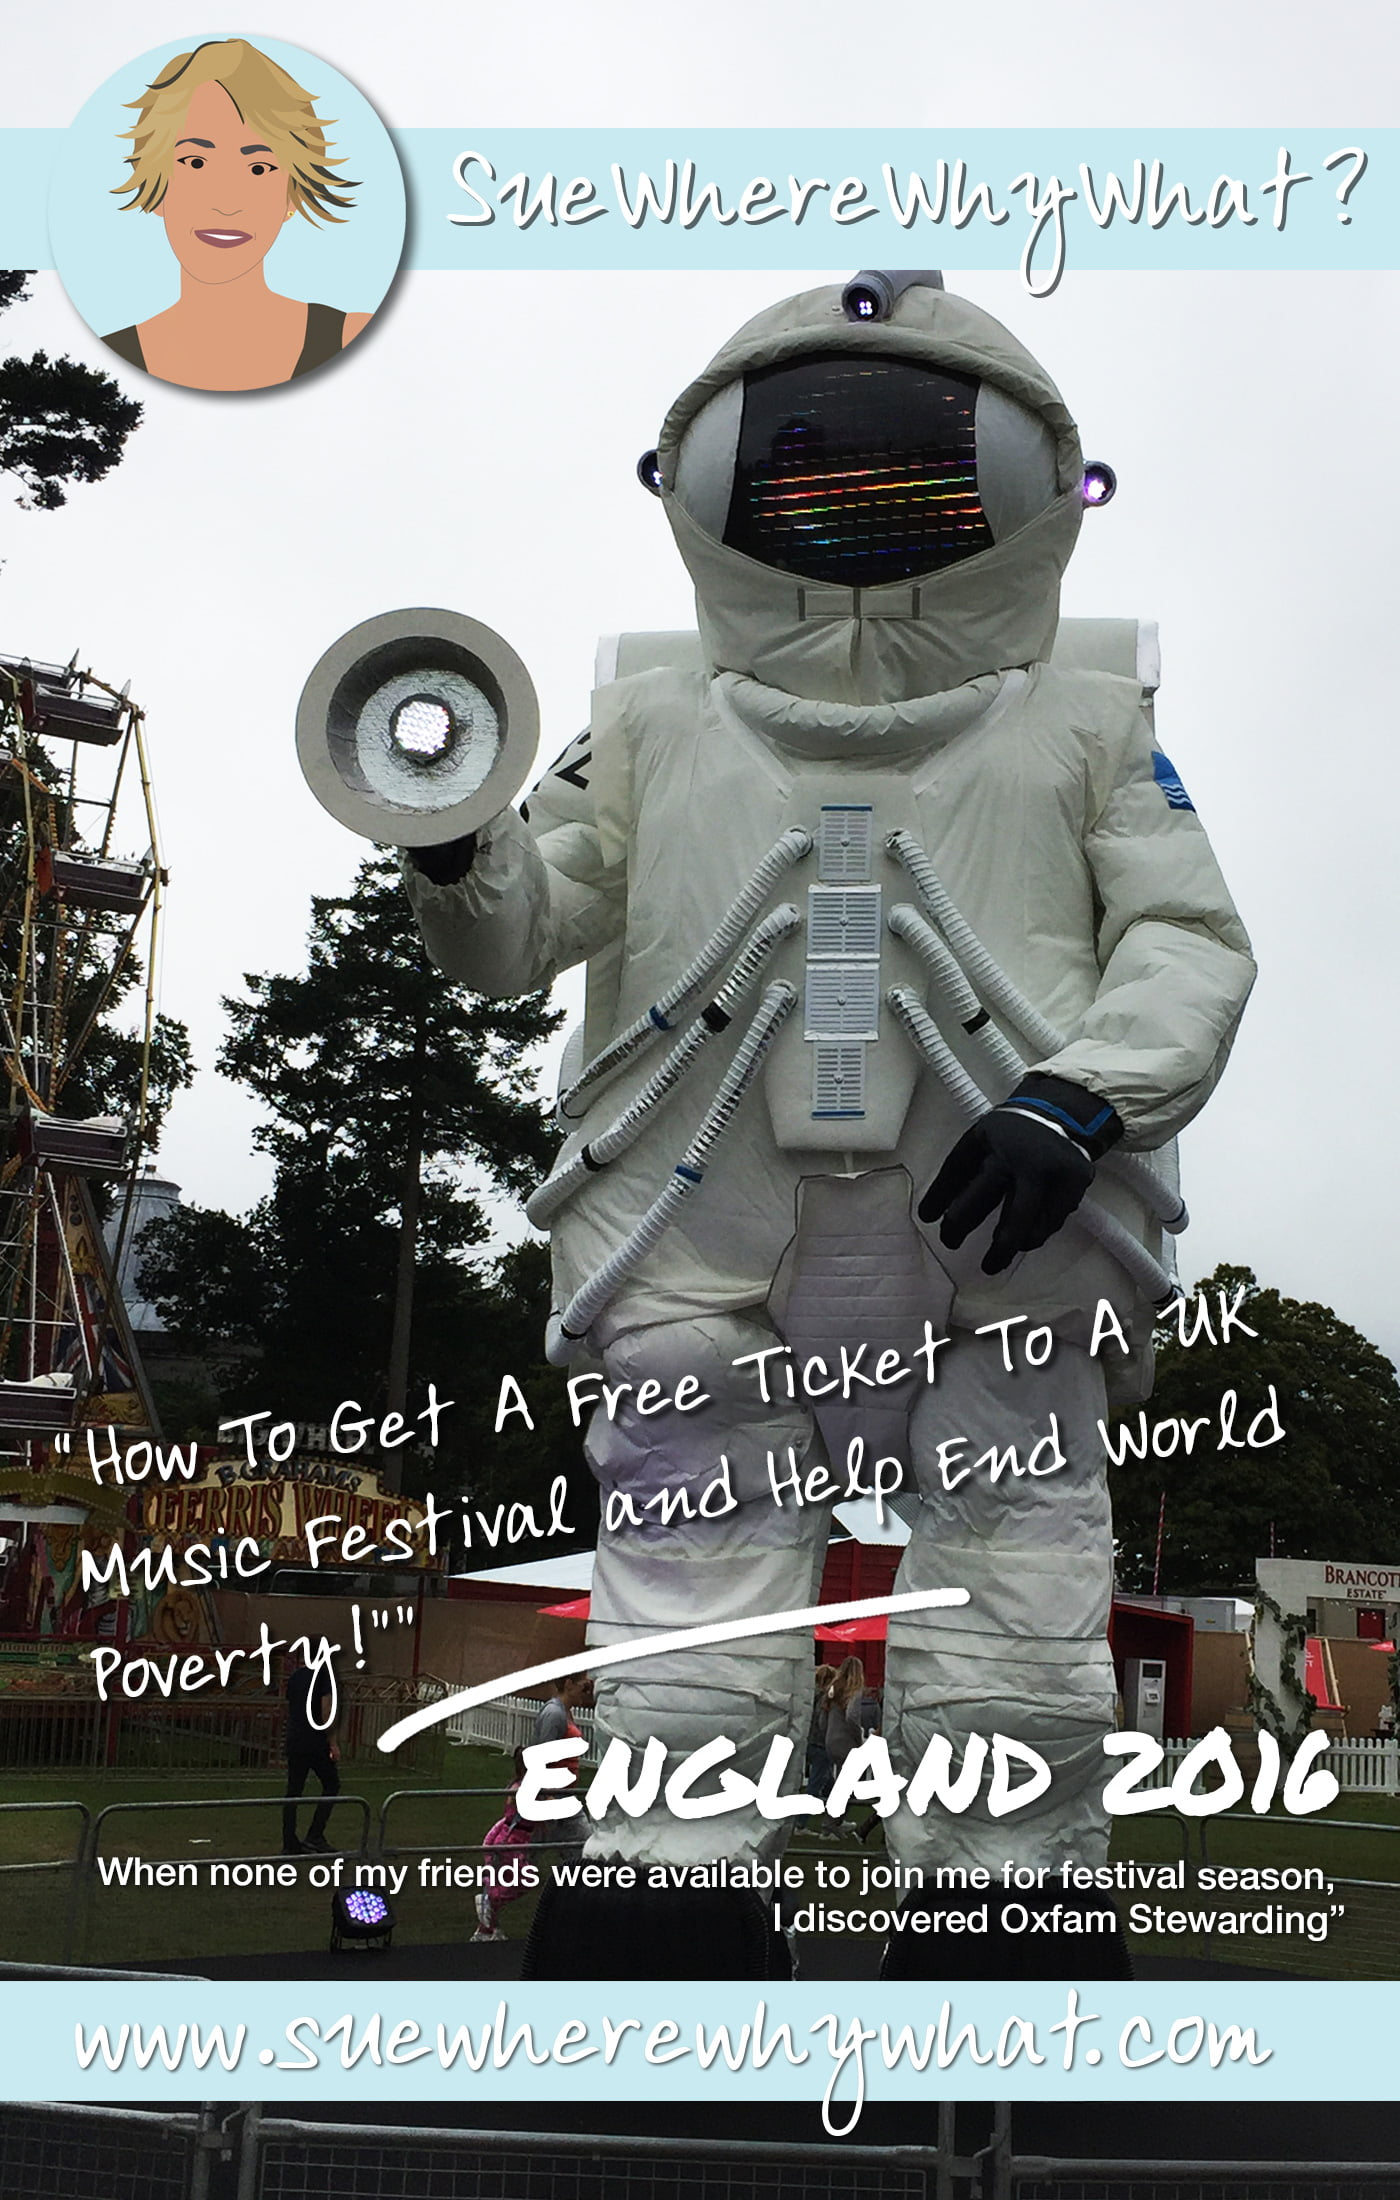 How To Get A Free Ticket To A UK Music Festival and Help End World Poverty